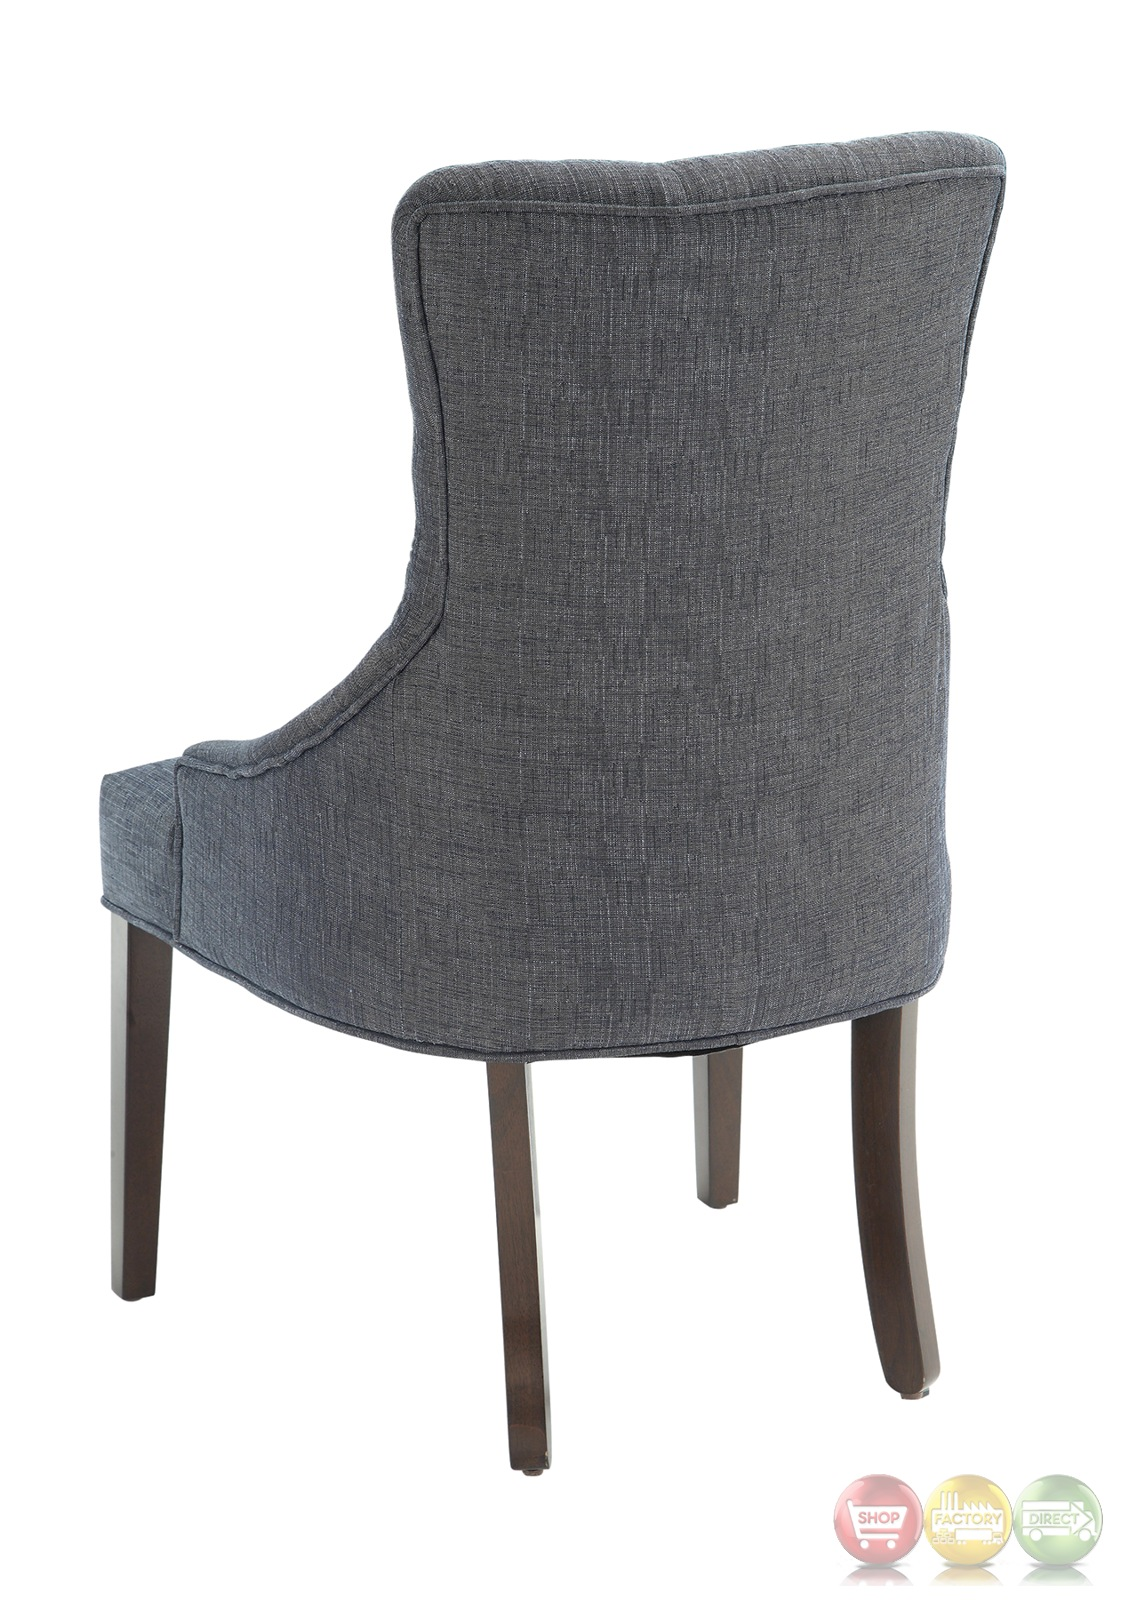 Blue Tufted Chair Caprice Button Tufted Blue Grey Linen Accent Chair